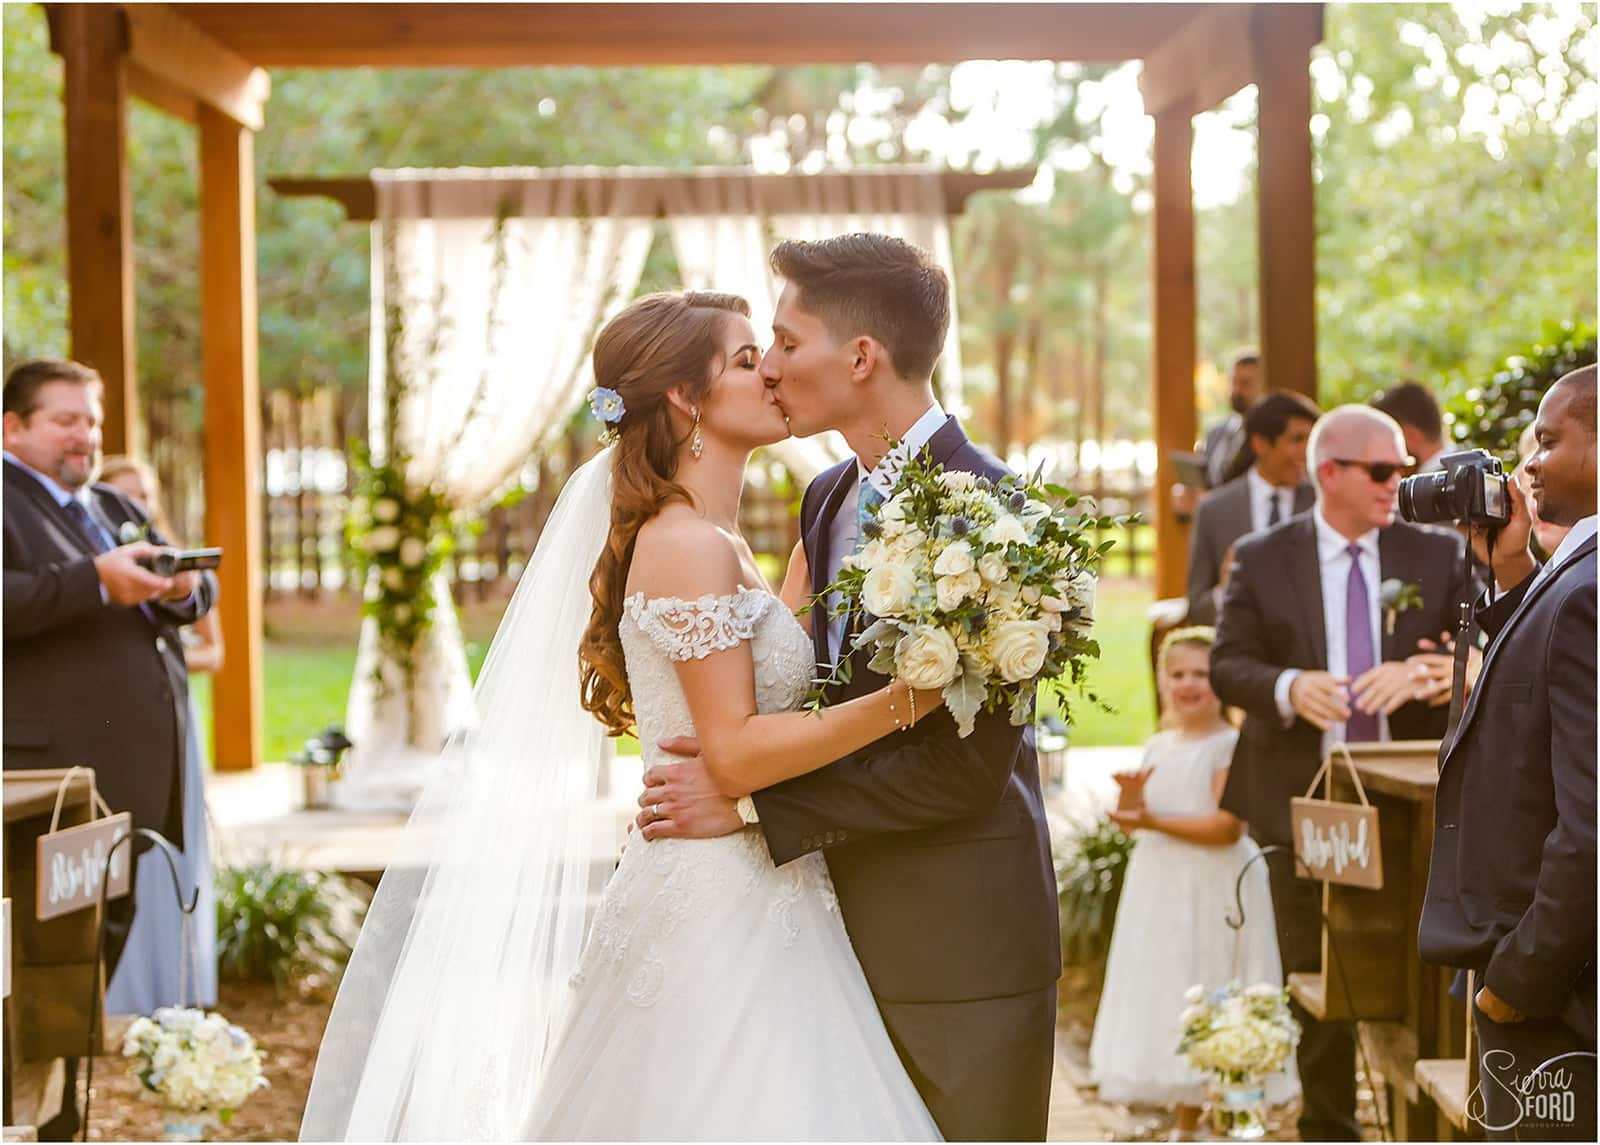 Amber and Phillip's kiss at outdoor wedding ceremony